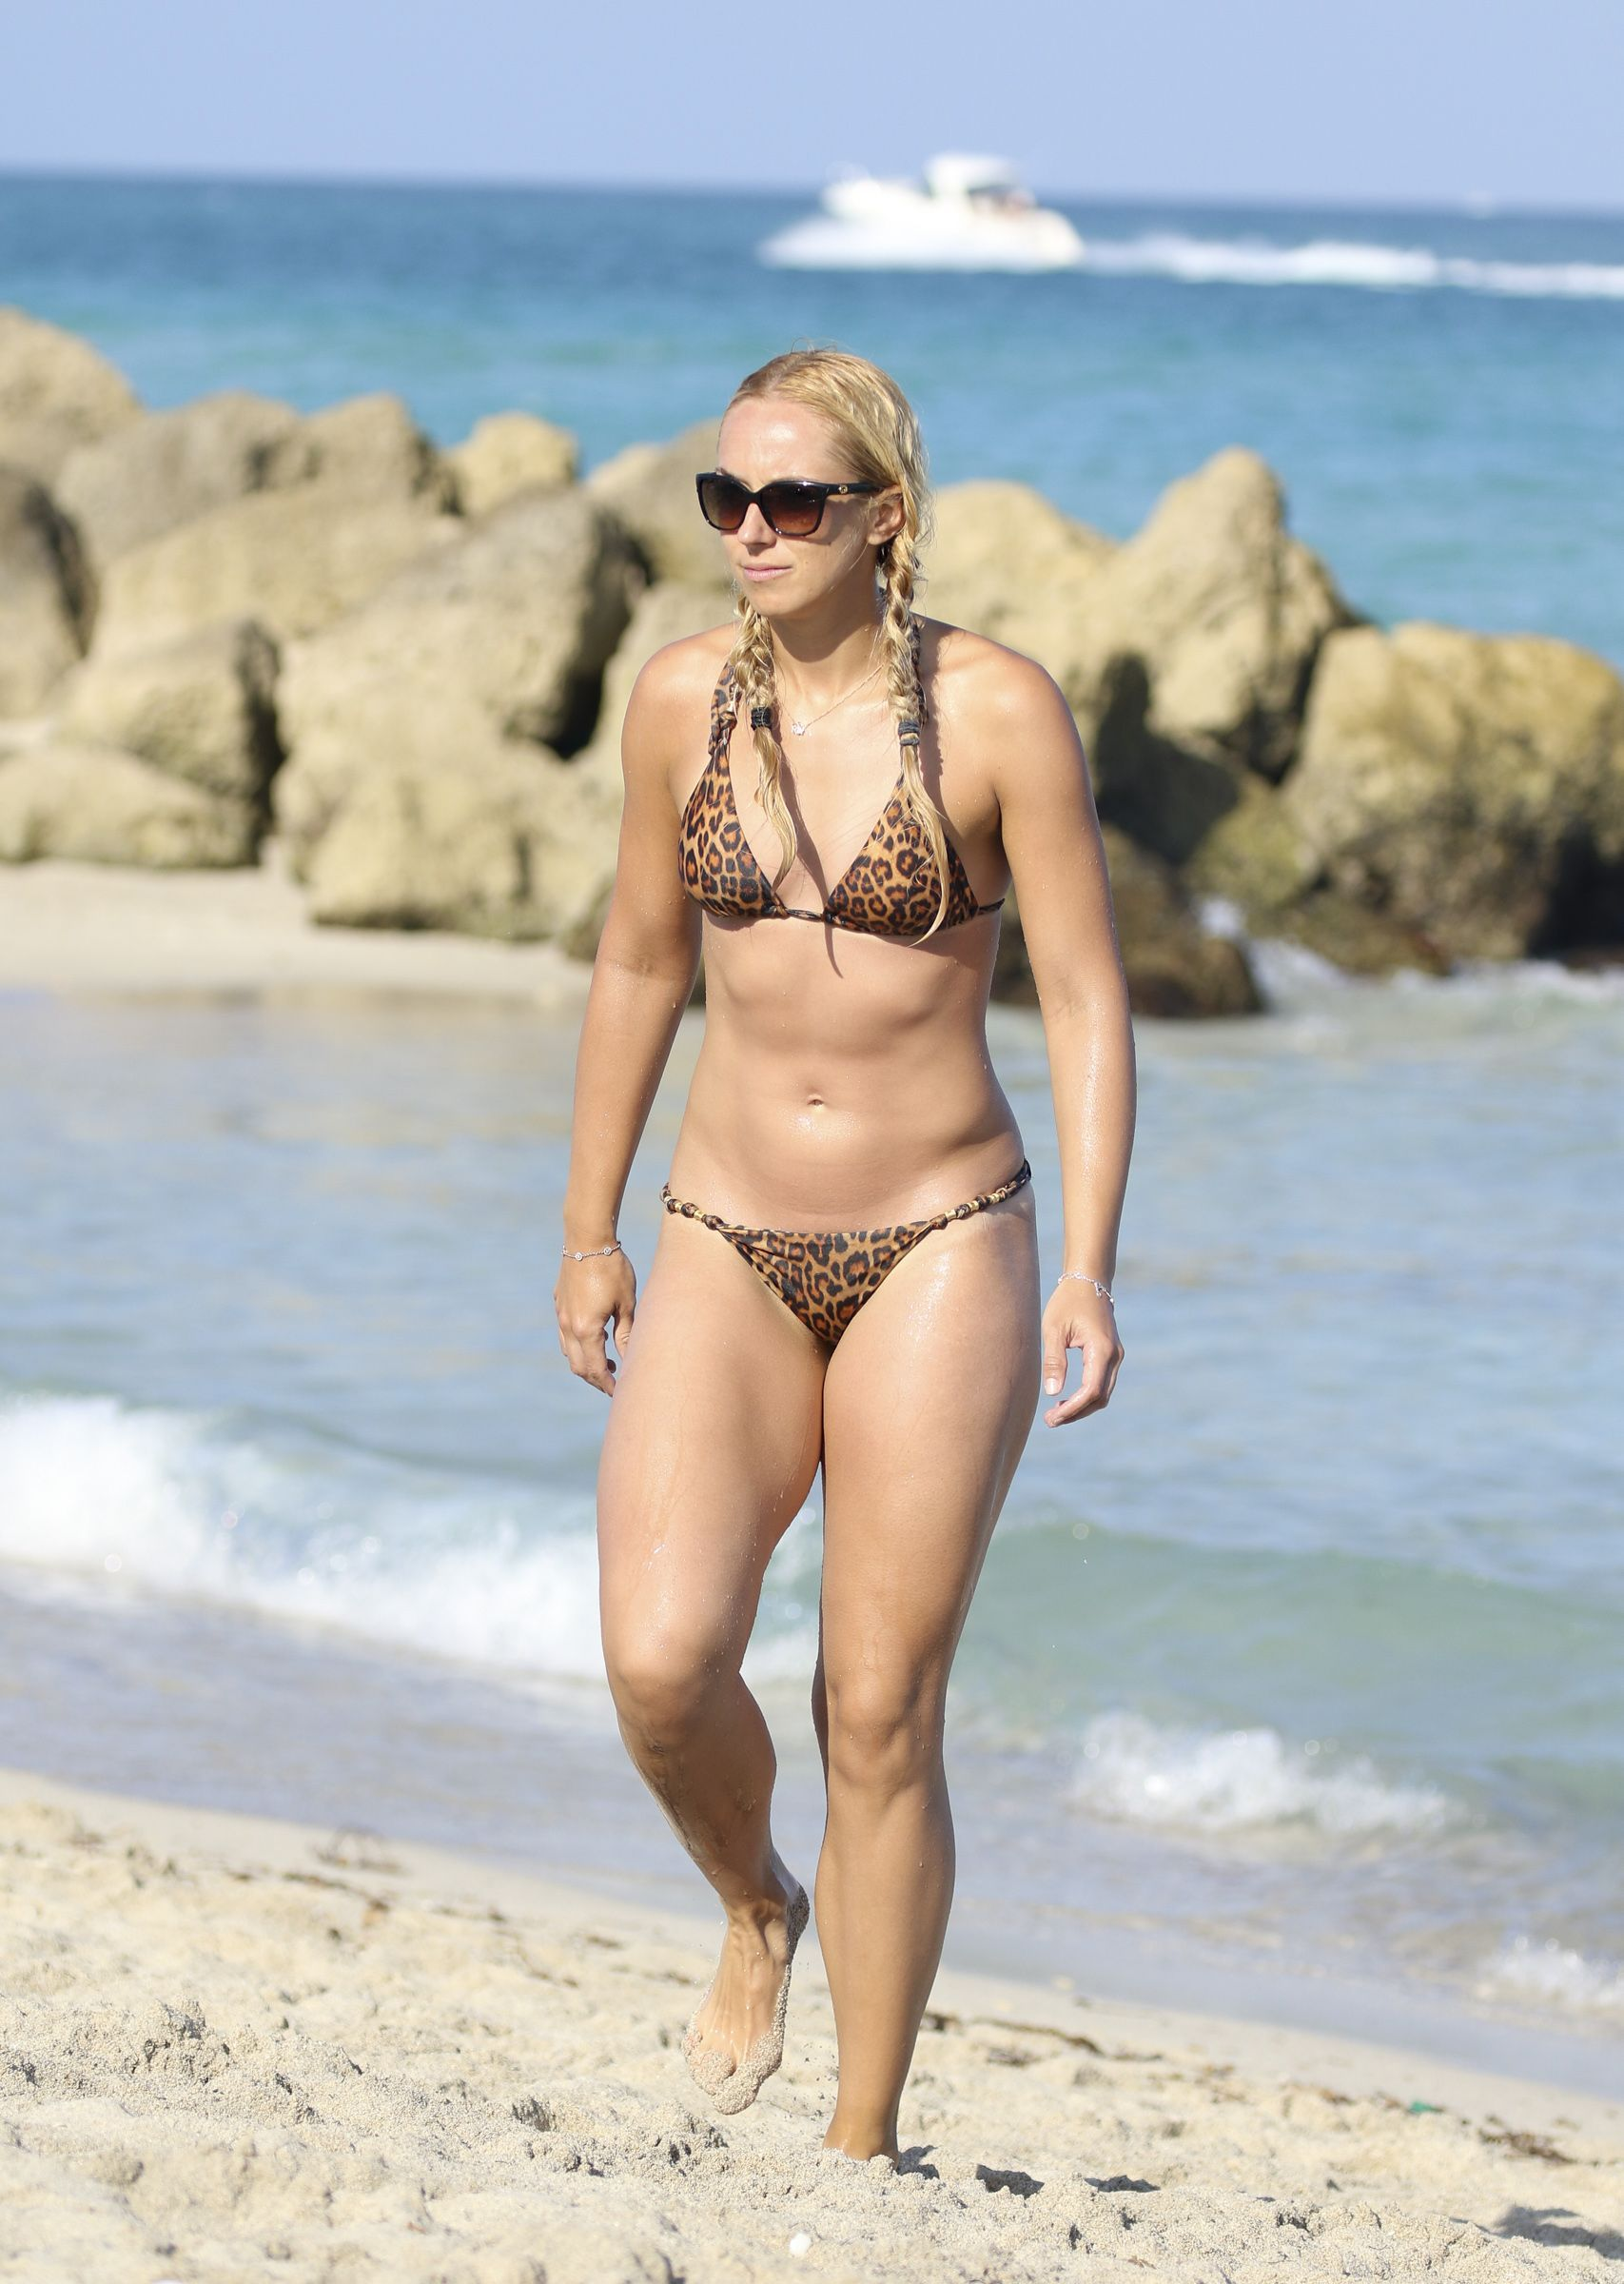 49 Hot Pictures Of Sabine Lisicki Will Hypnotise You With